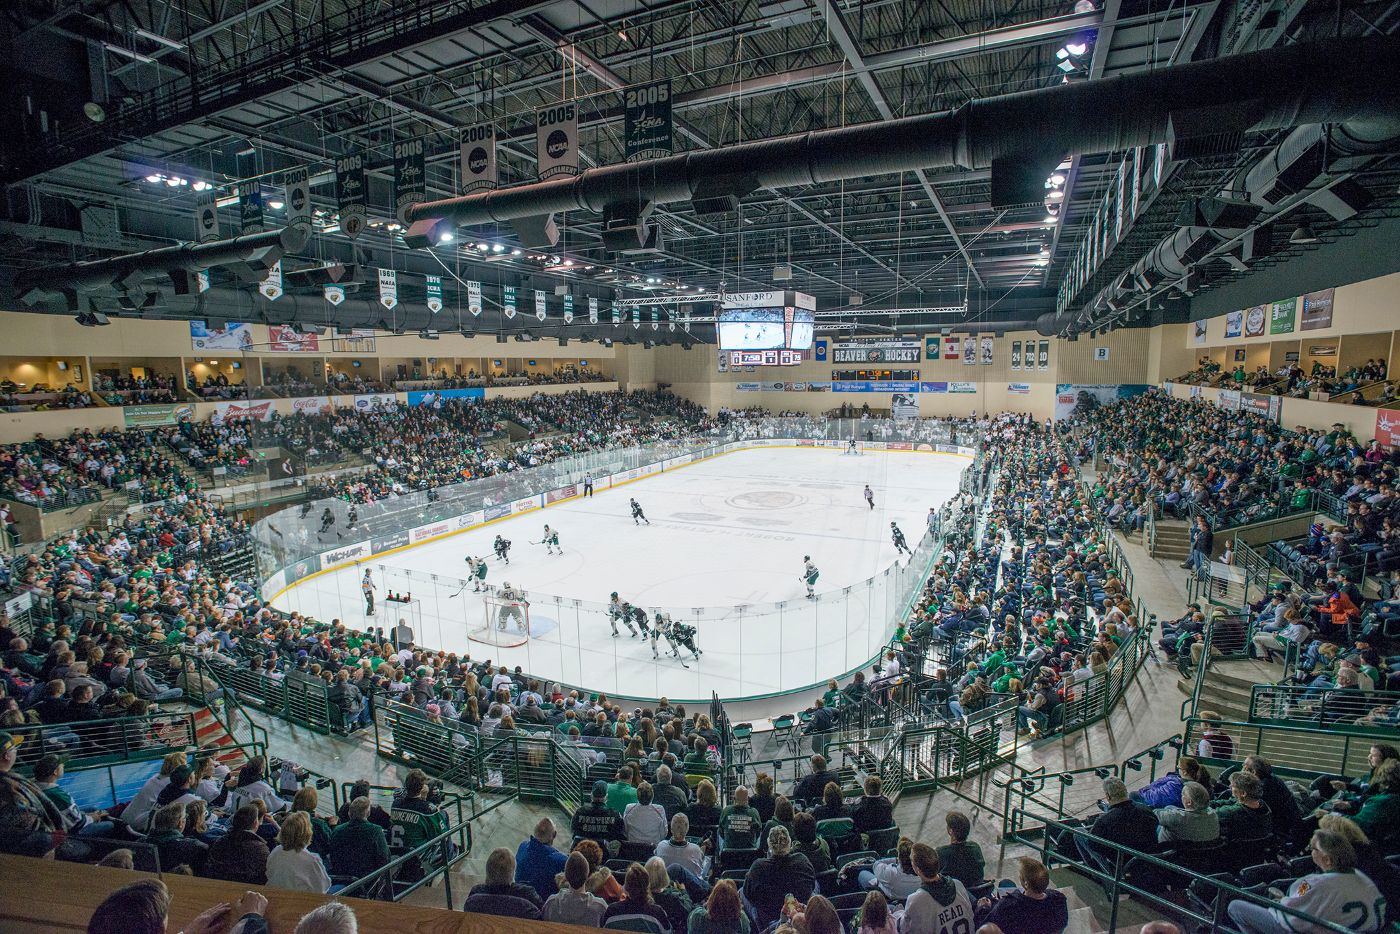 Bemidji State announces intent to explore new men's hockey conference home